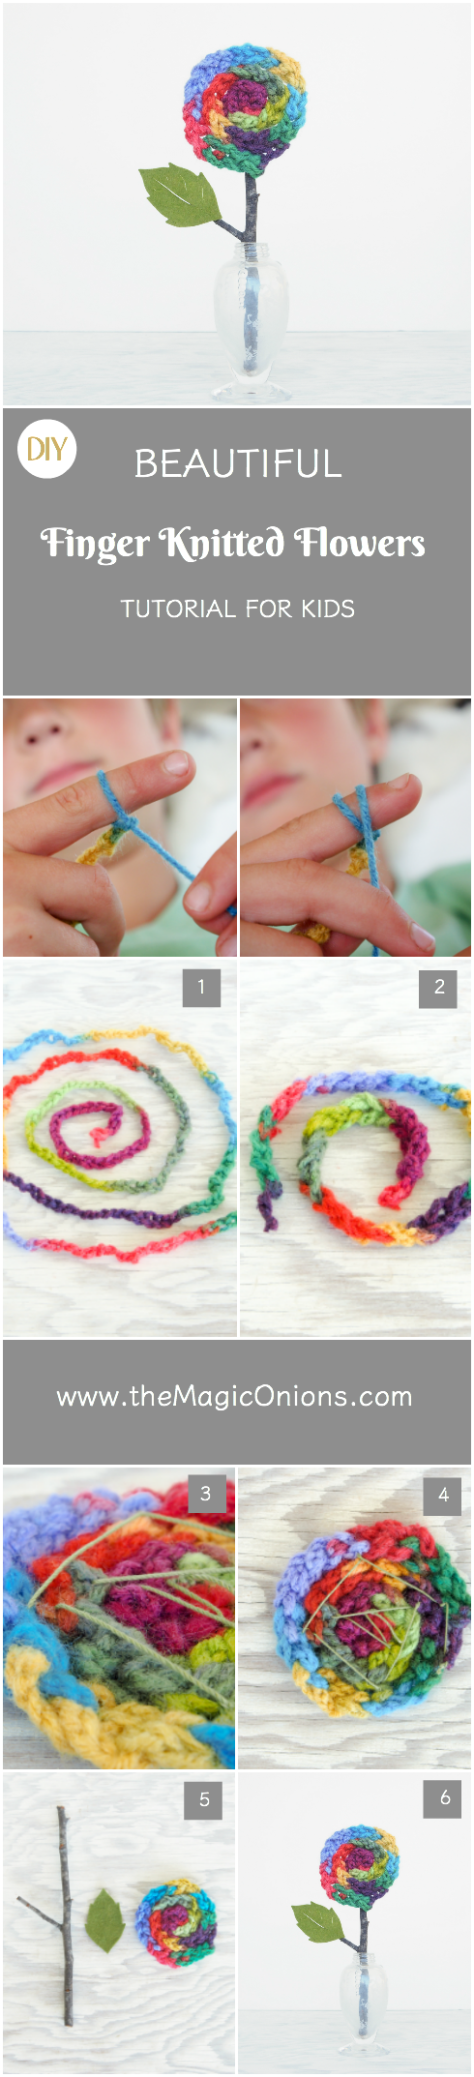 Finger Knitted Flower Tutorial